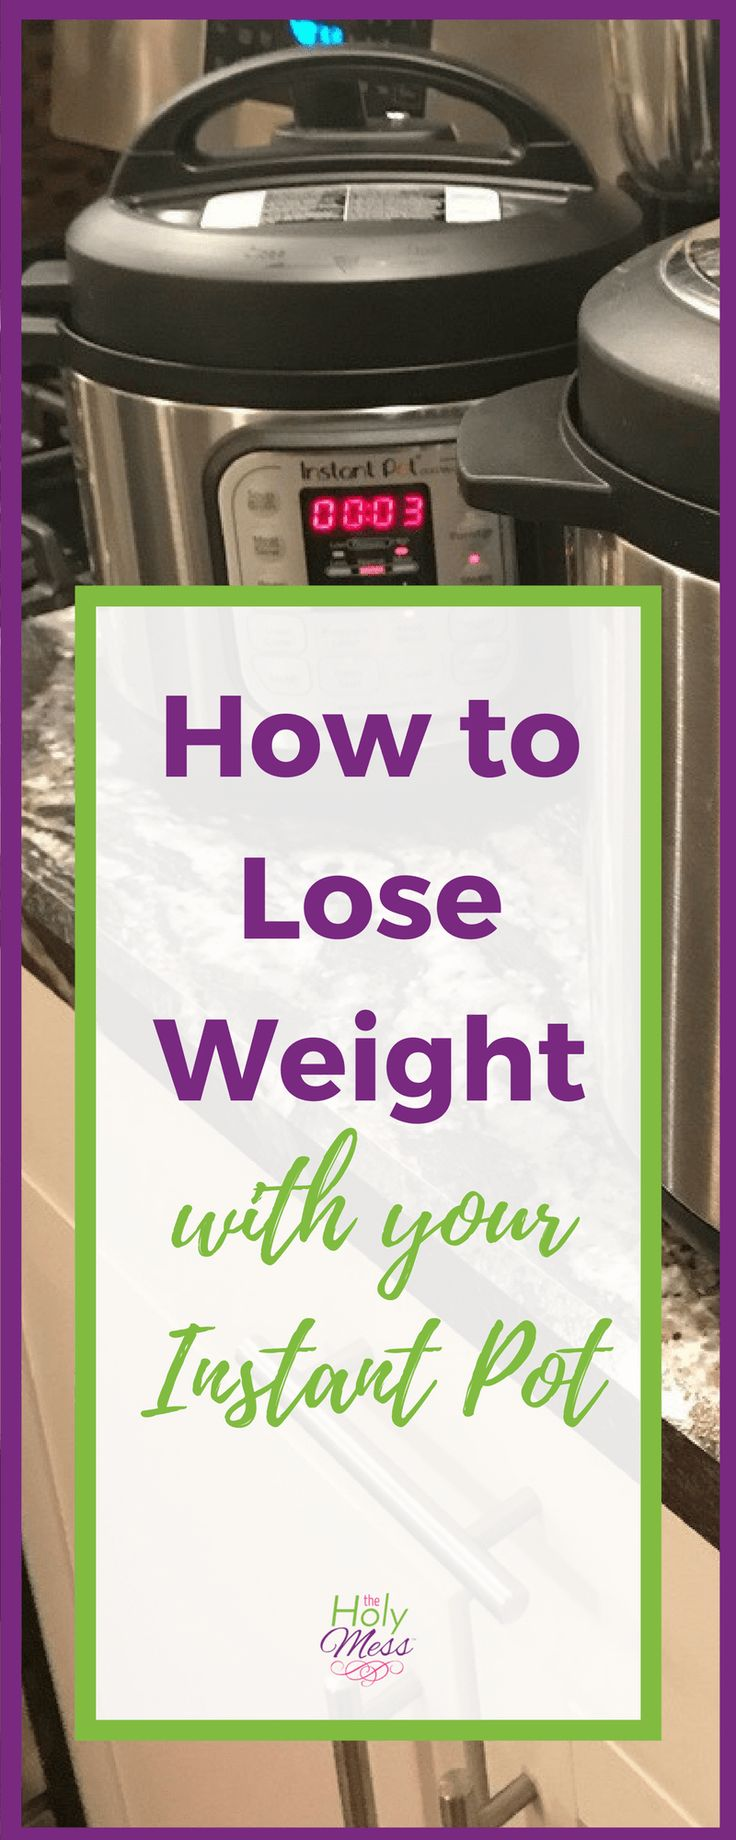 You have an Instant Pot, and you need to lose weight. How do the two go together? Here is how to lose weight with your Instant Pot pressure cooker.